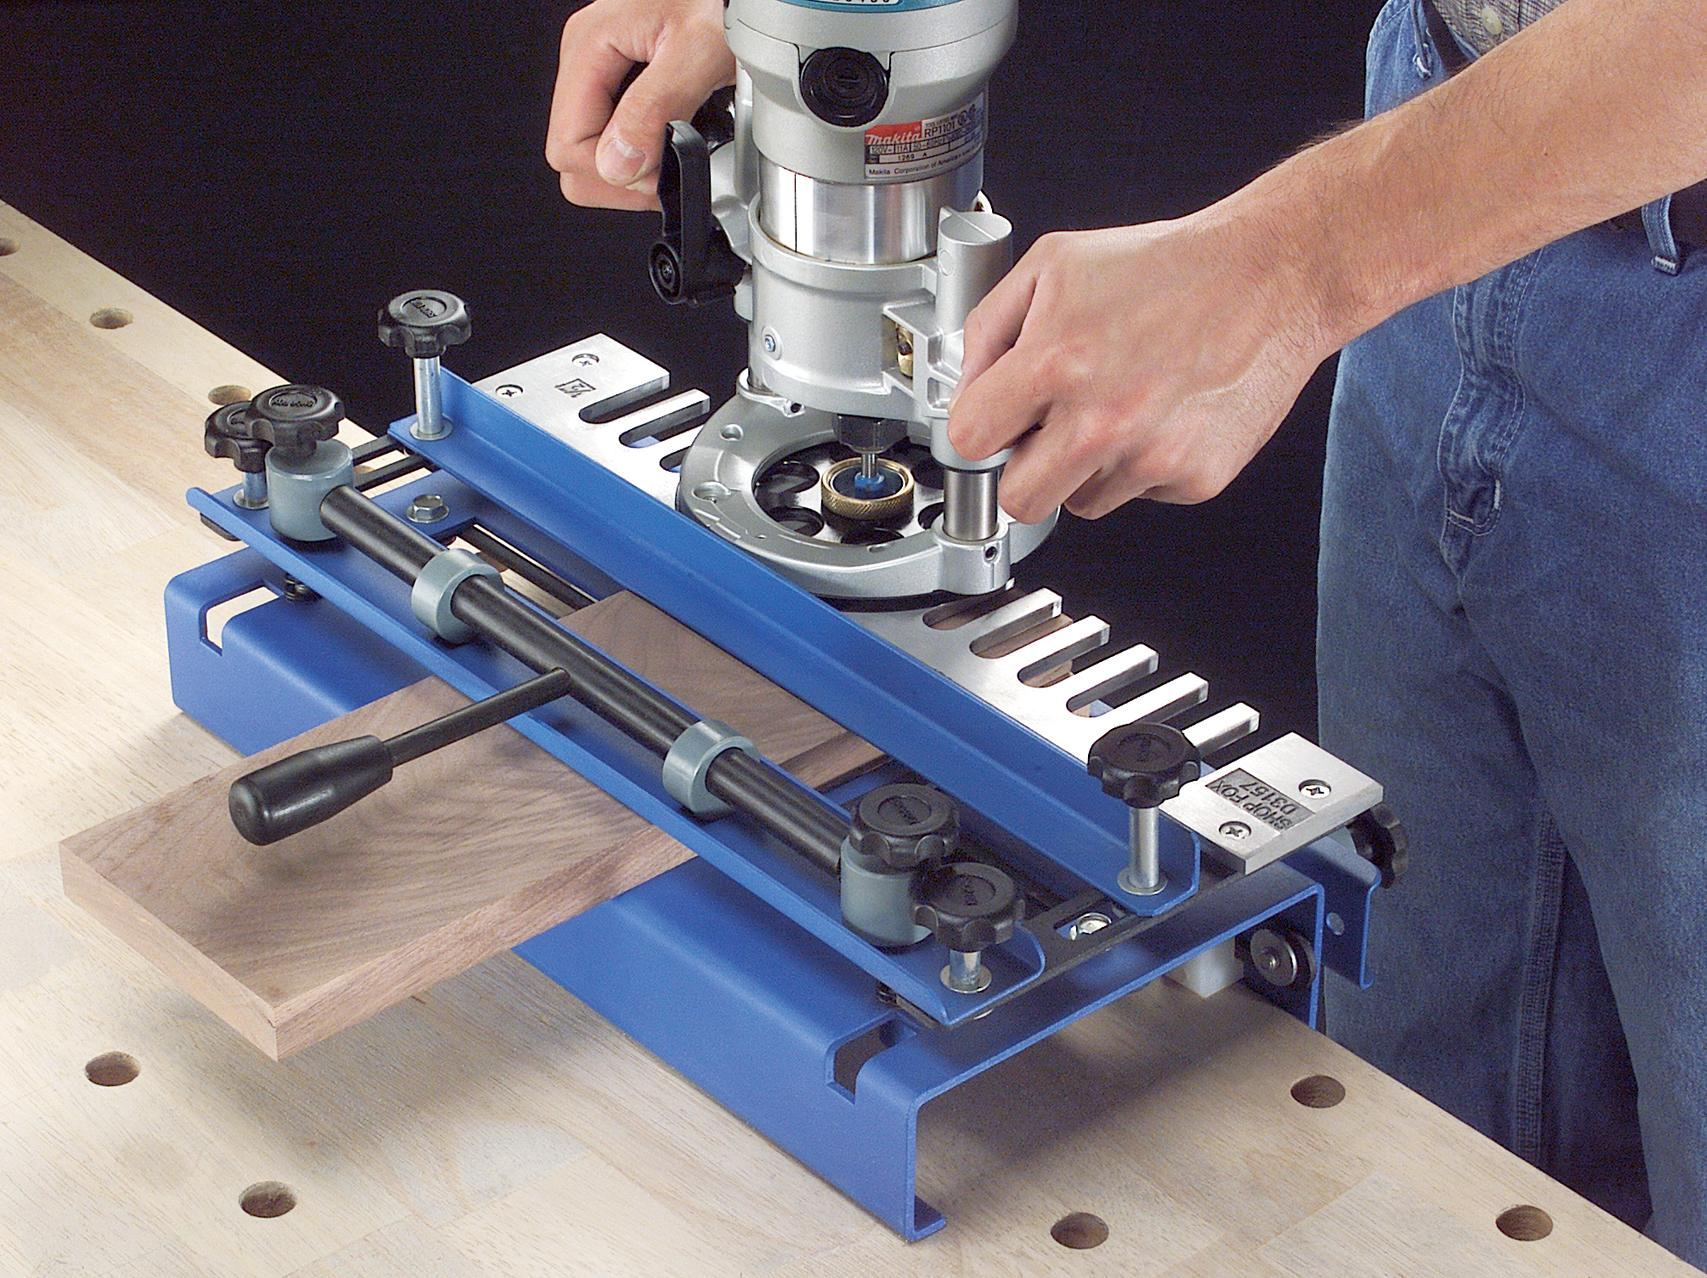 Woodstock D2796 12 Inch Dovetail Jig With Aluminum